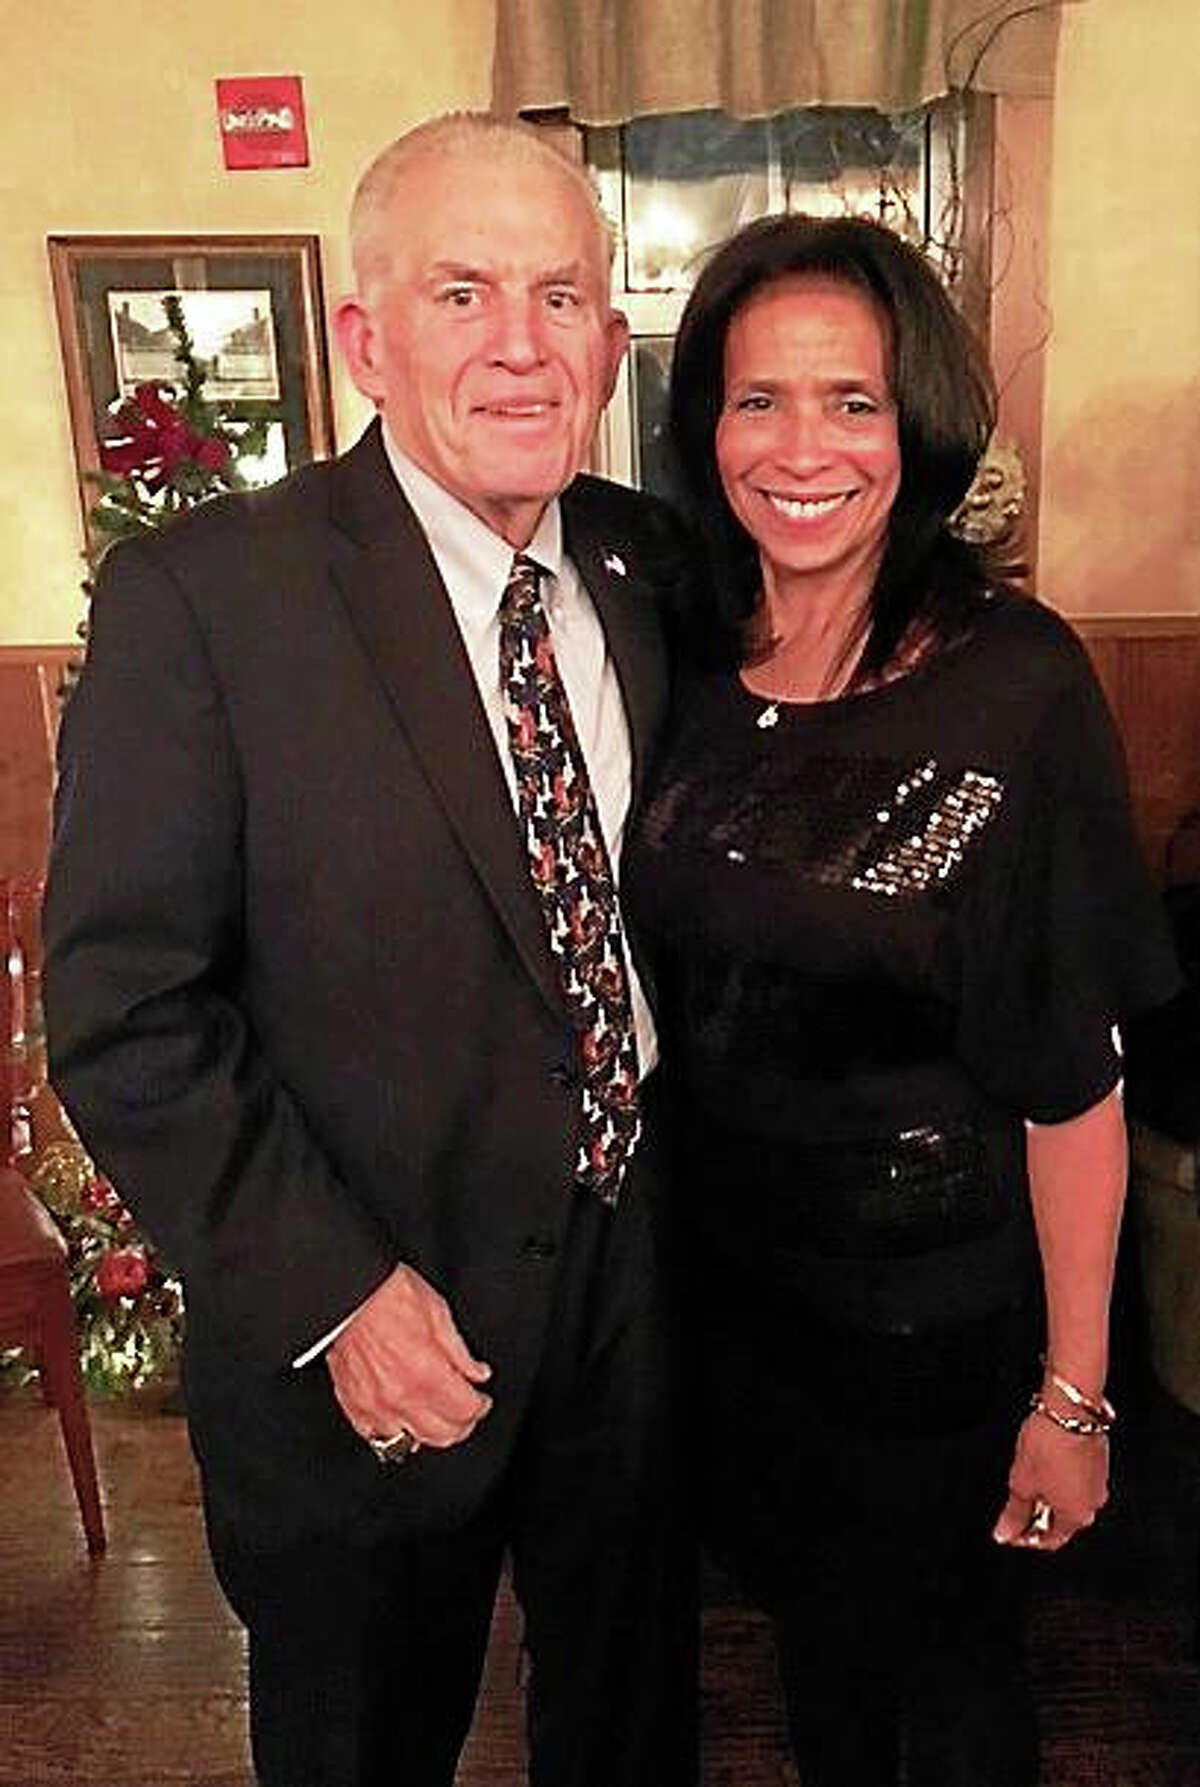 Chamber President Larry McHugh and Sterling Realtors President Jackie Williams celebrate Sterling's 30 years in business at the company's Christmas gathering Dec. 22.